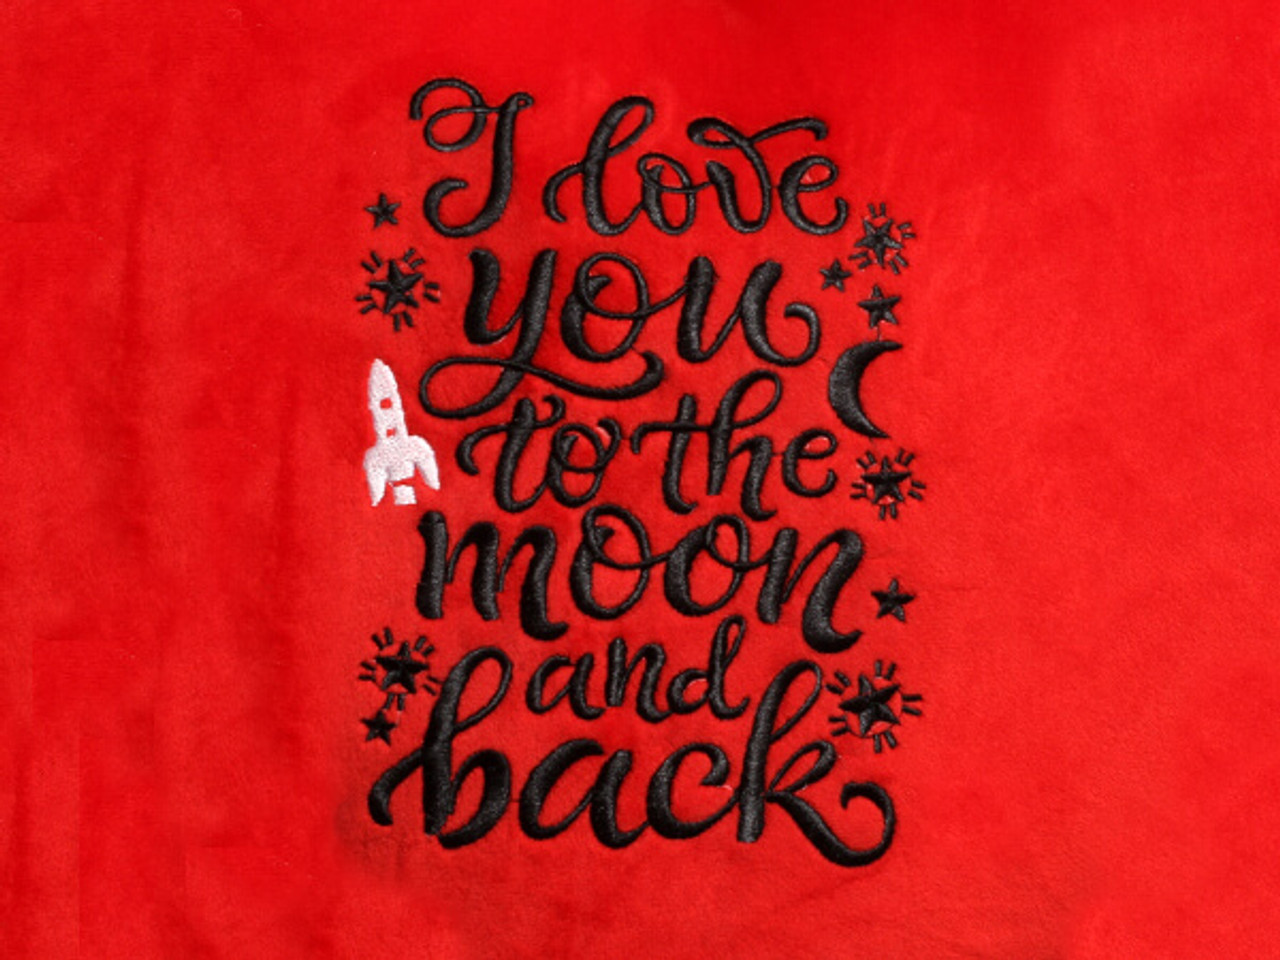 18in red heart pillow black embroidery 'I Love You to the Moon and Back' text close-up